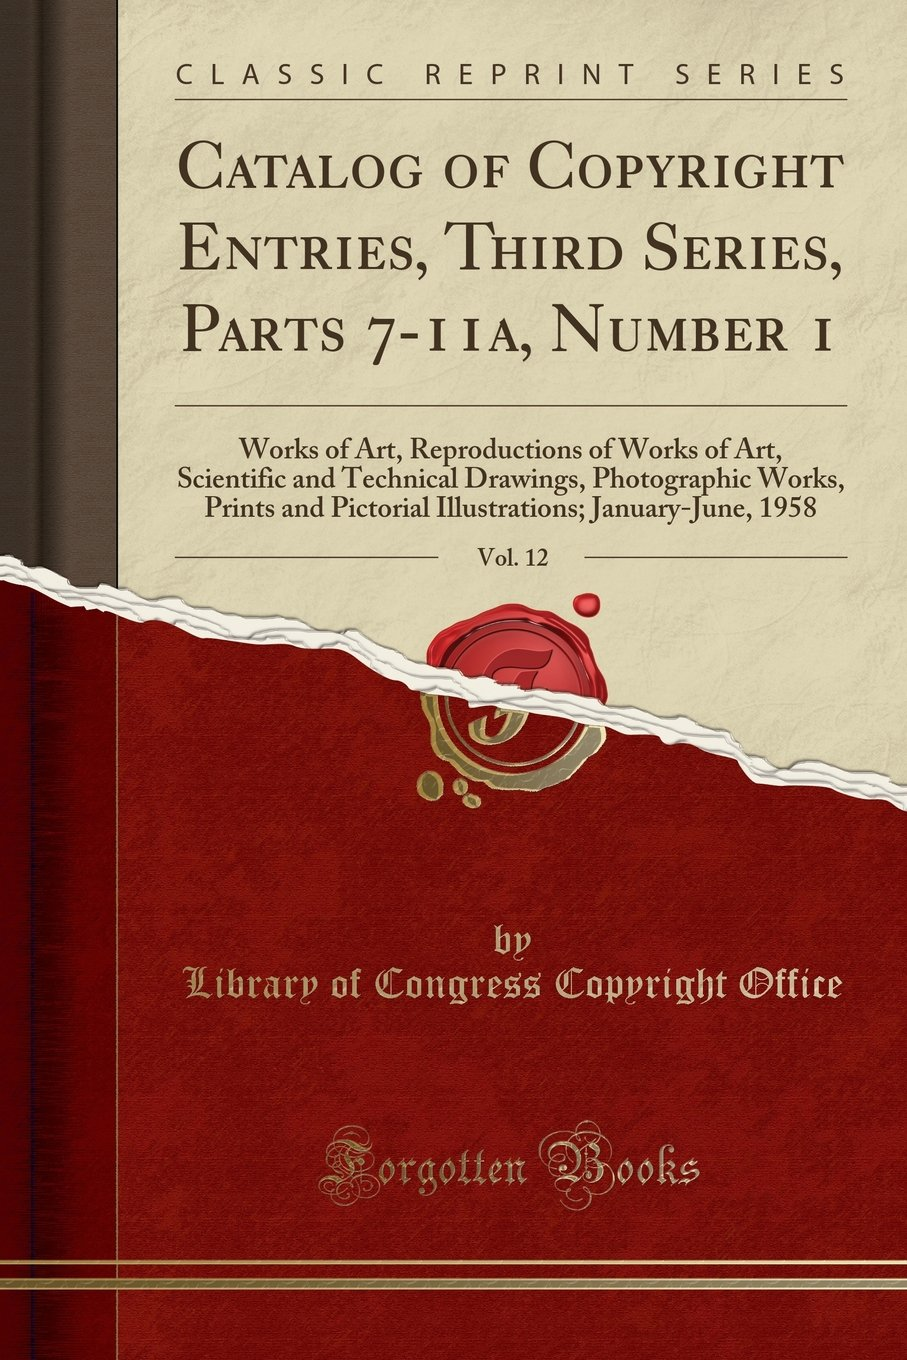 Download Catalog of Copyright Entries, Third Series, Parts 7-11a, Number 1, Vol. 12: Works of Art, Reproductions of Works of Art, Scientific and Technical ... January-June, 1958 (Classic Reprint) PDF